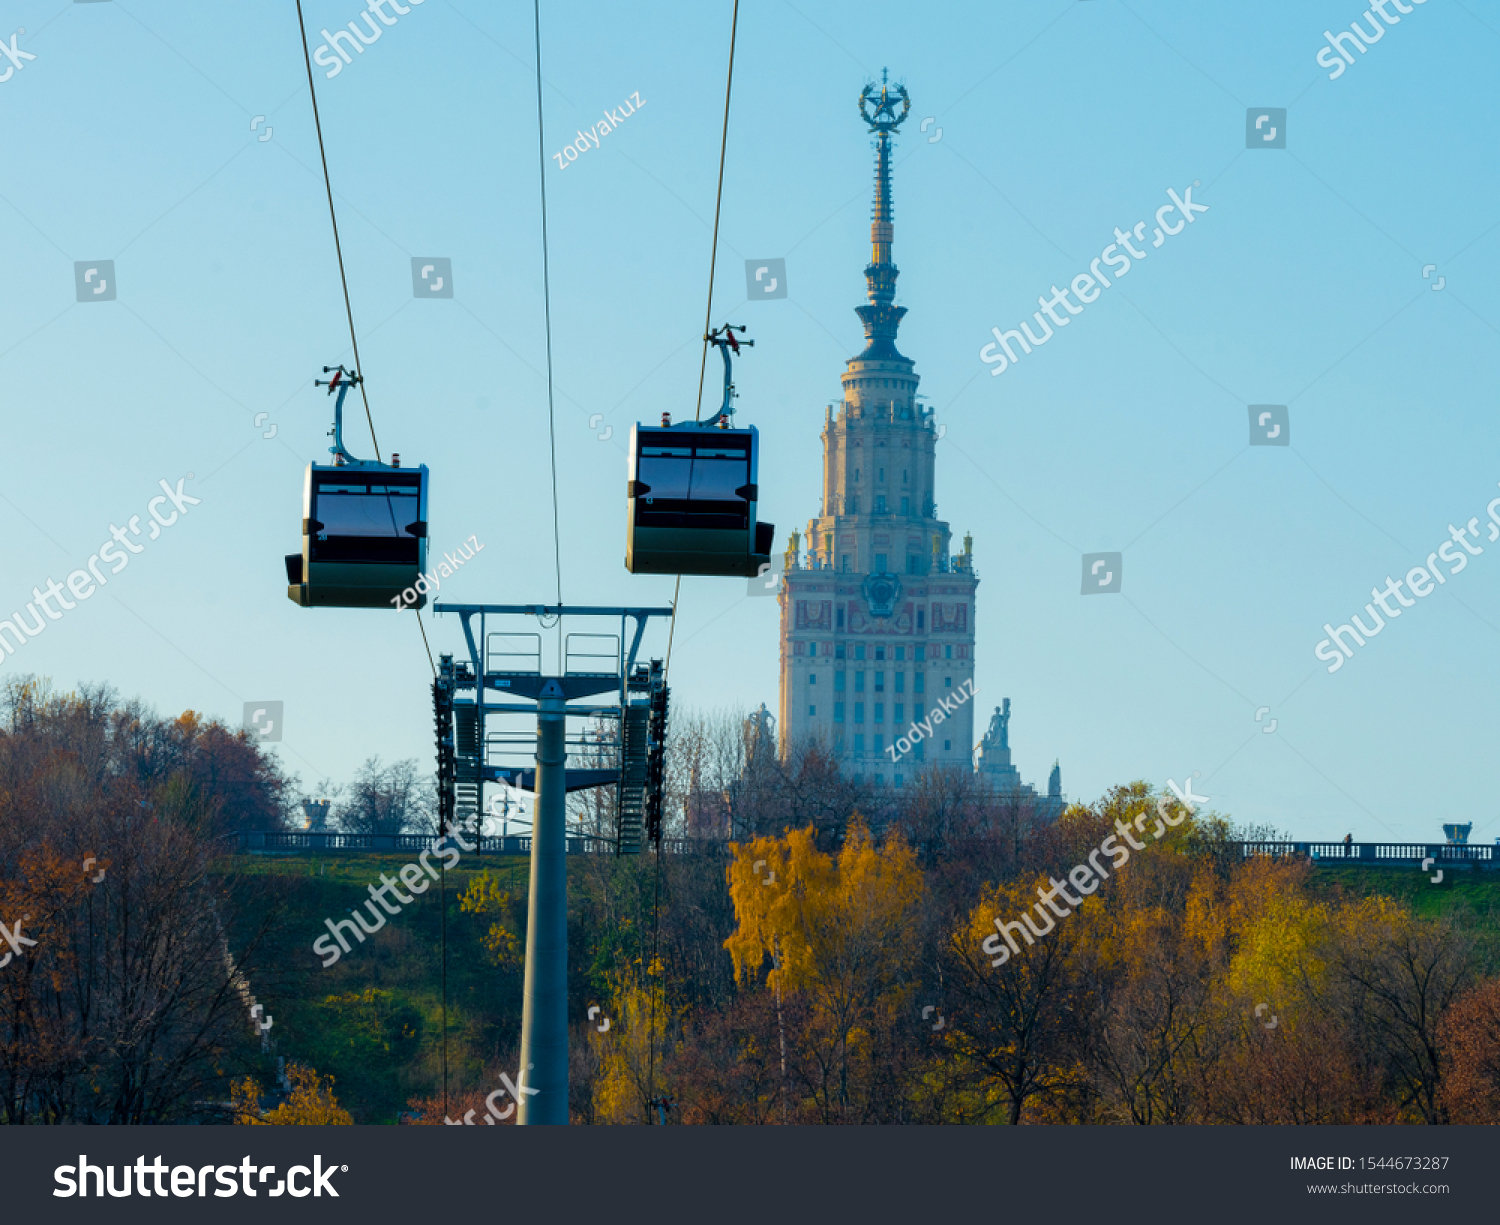 Moscow City with Moscow River, Moscow skyline with the historical architecture skyscraper, Aerial view, Russia. #1544673287